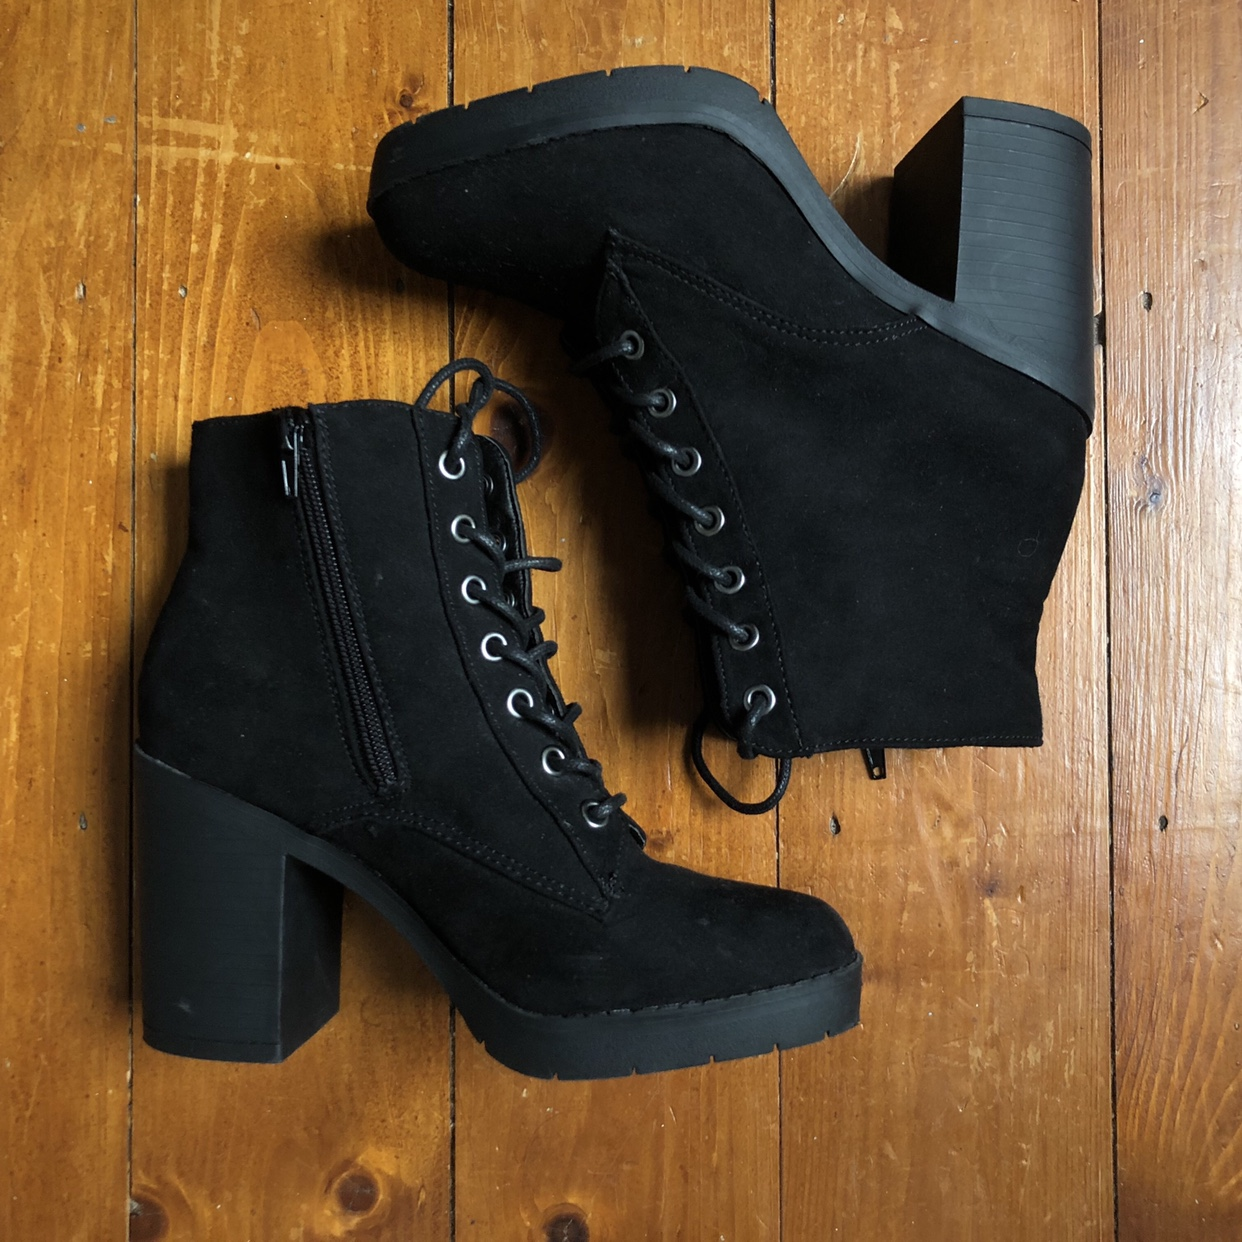 Primark Lace Up Boots Black Suede Size